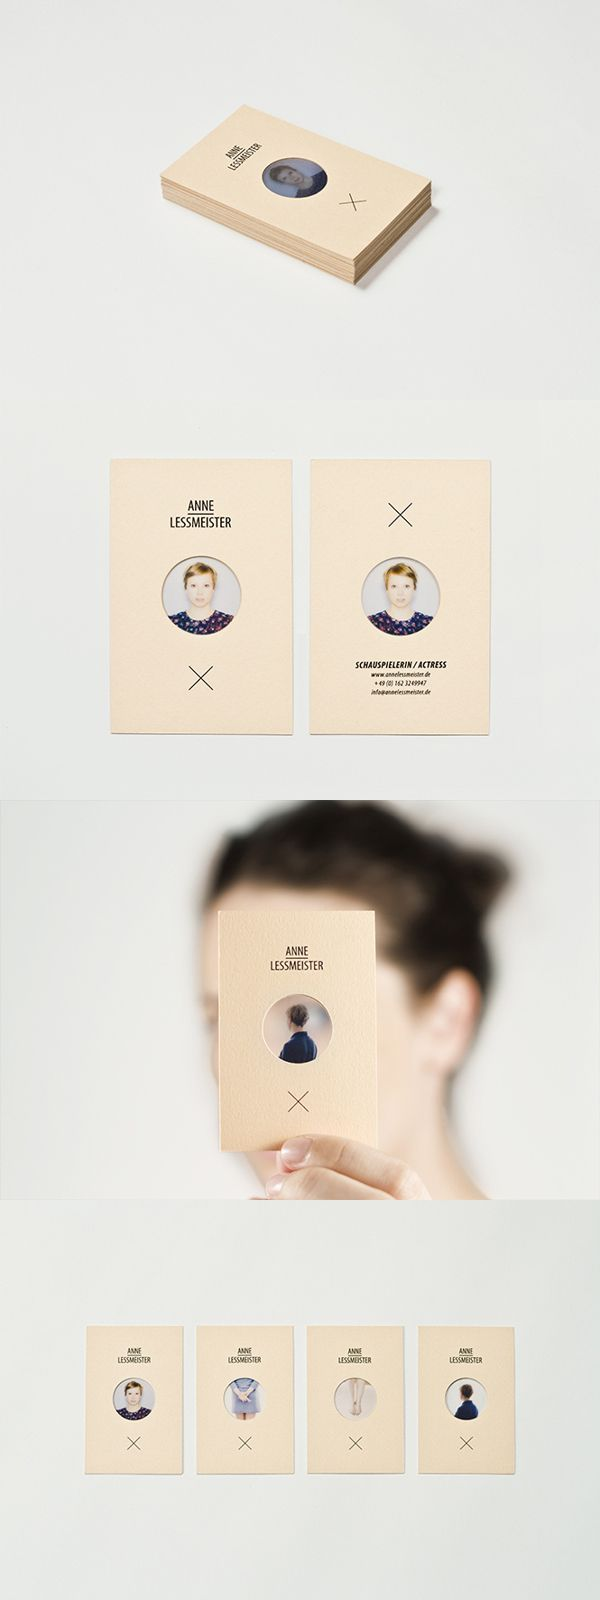 Anne Lessmeister cute branding and design